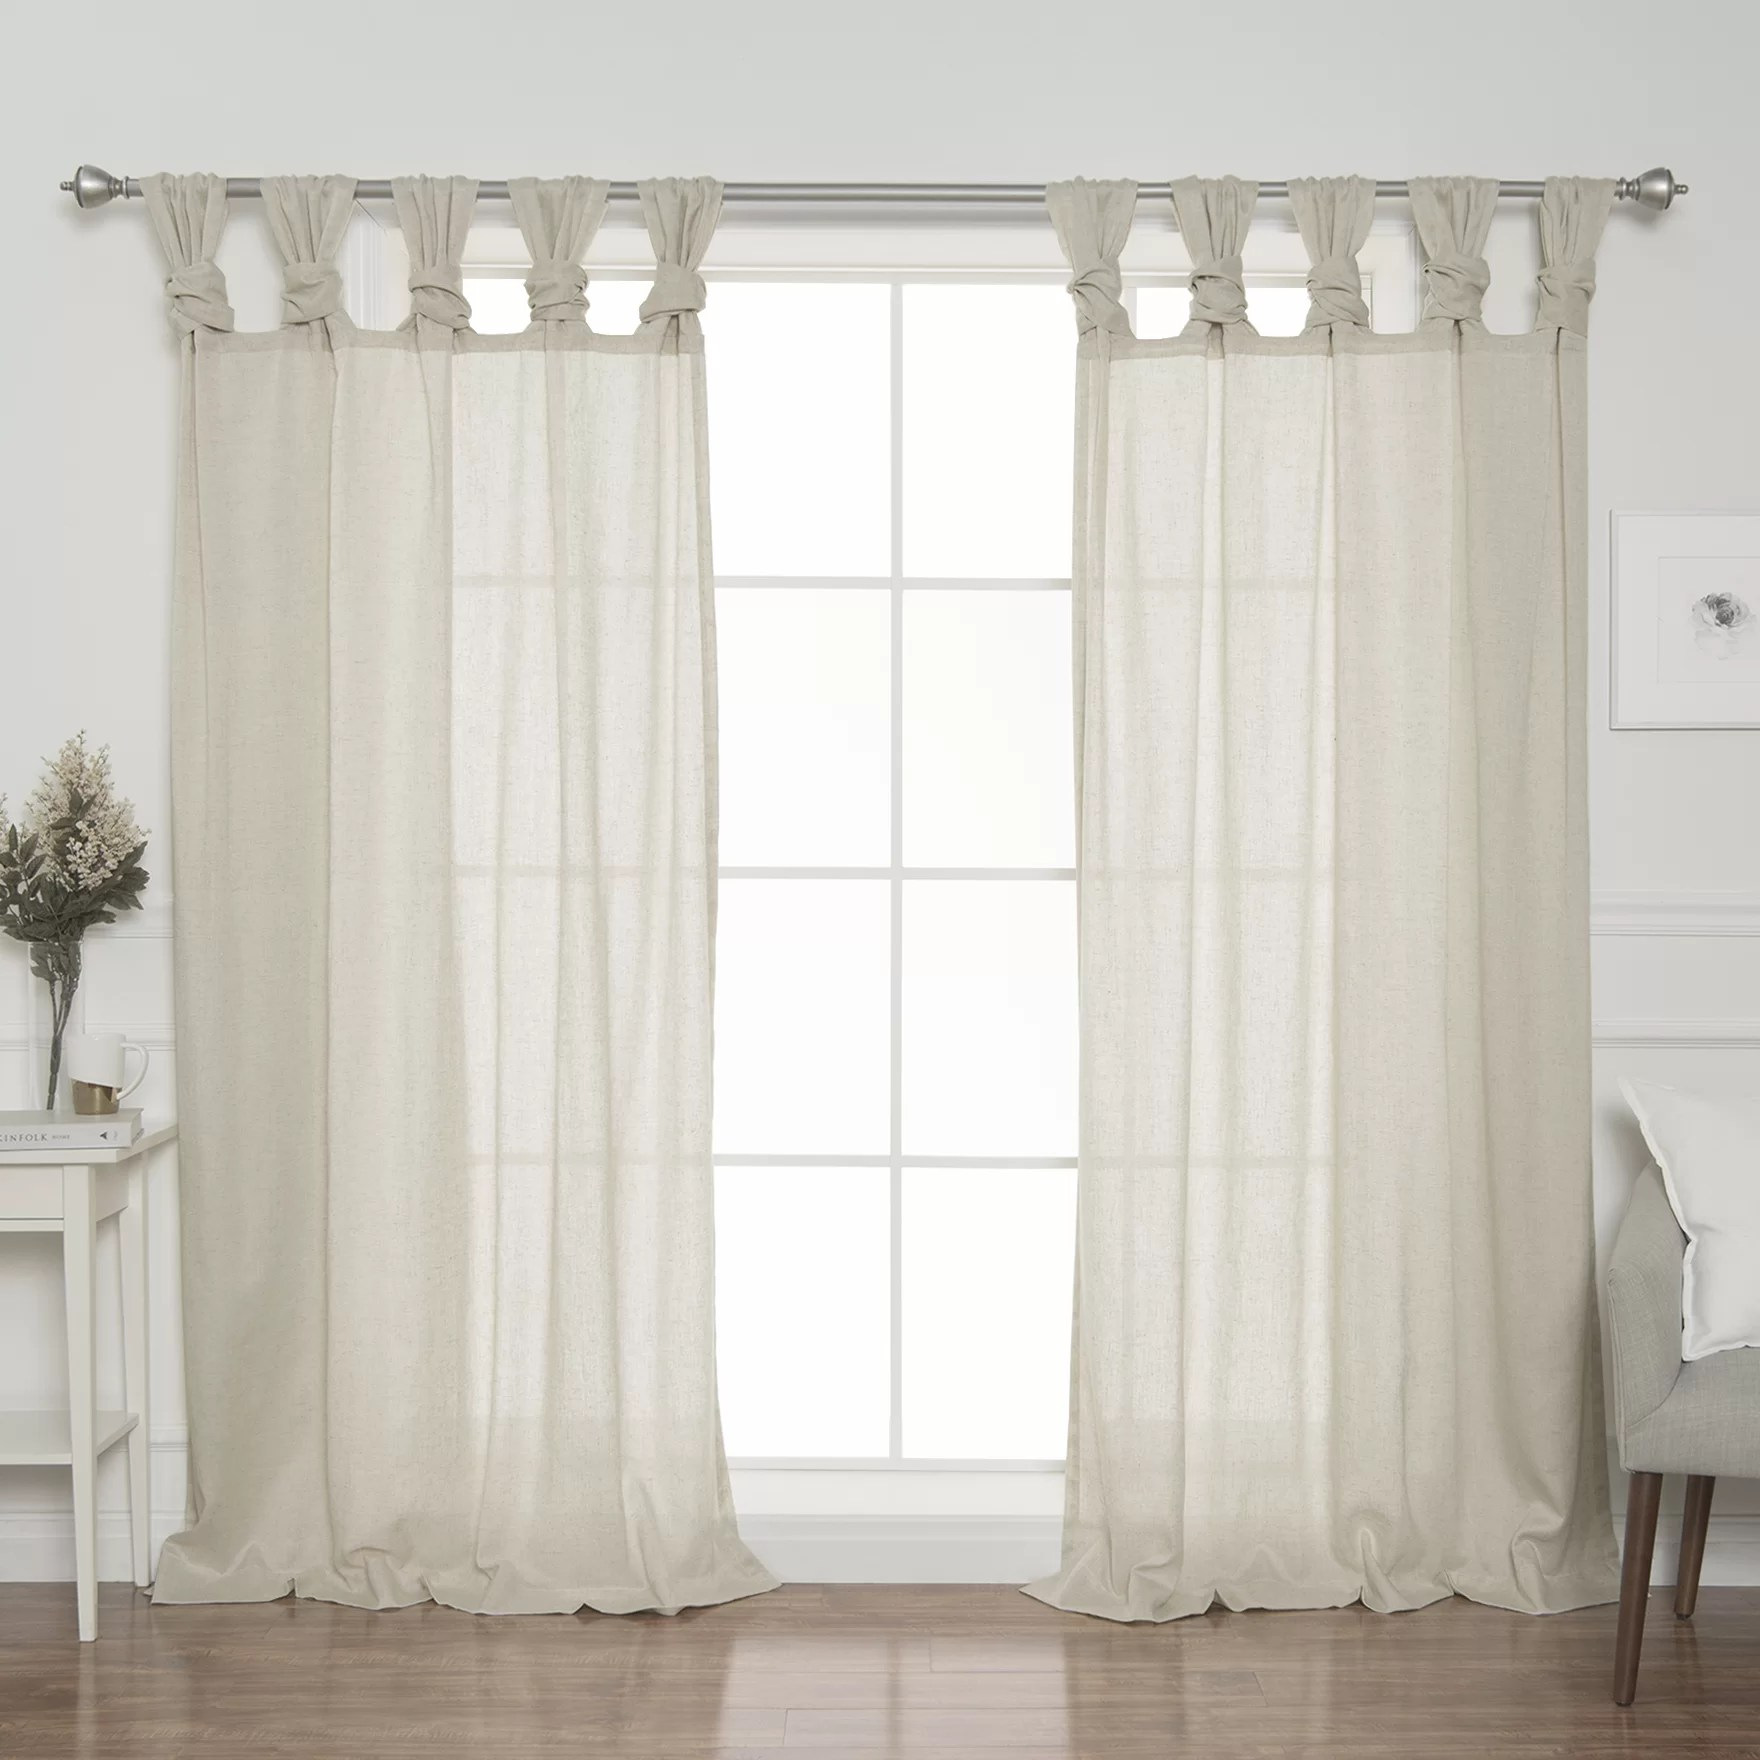 Tab Top Curtain Weatherby Faux Linen Solid Semi Sheer Twist Tab Top Curtain Panels